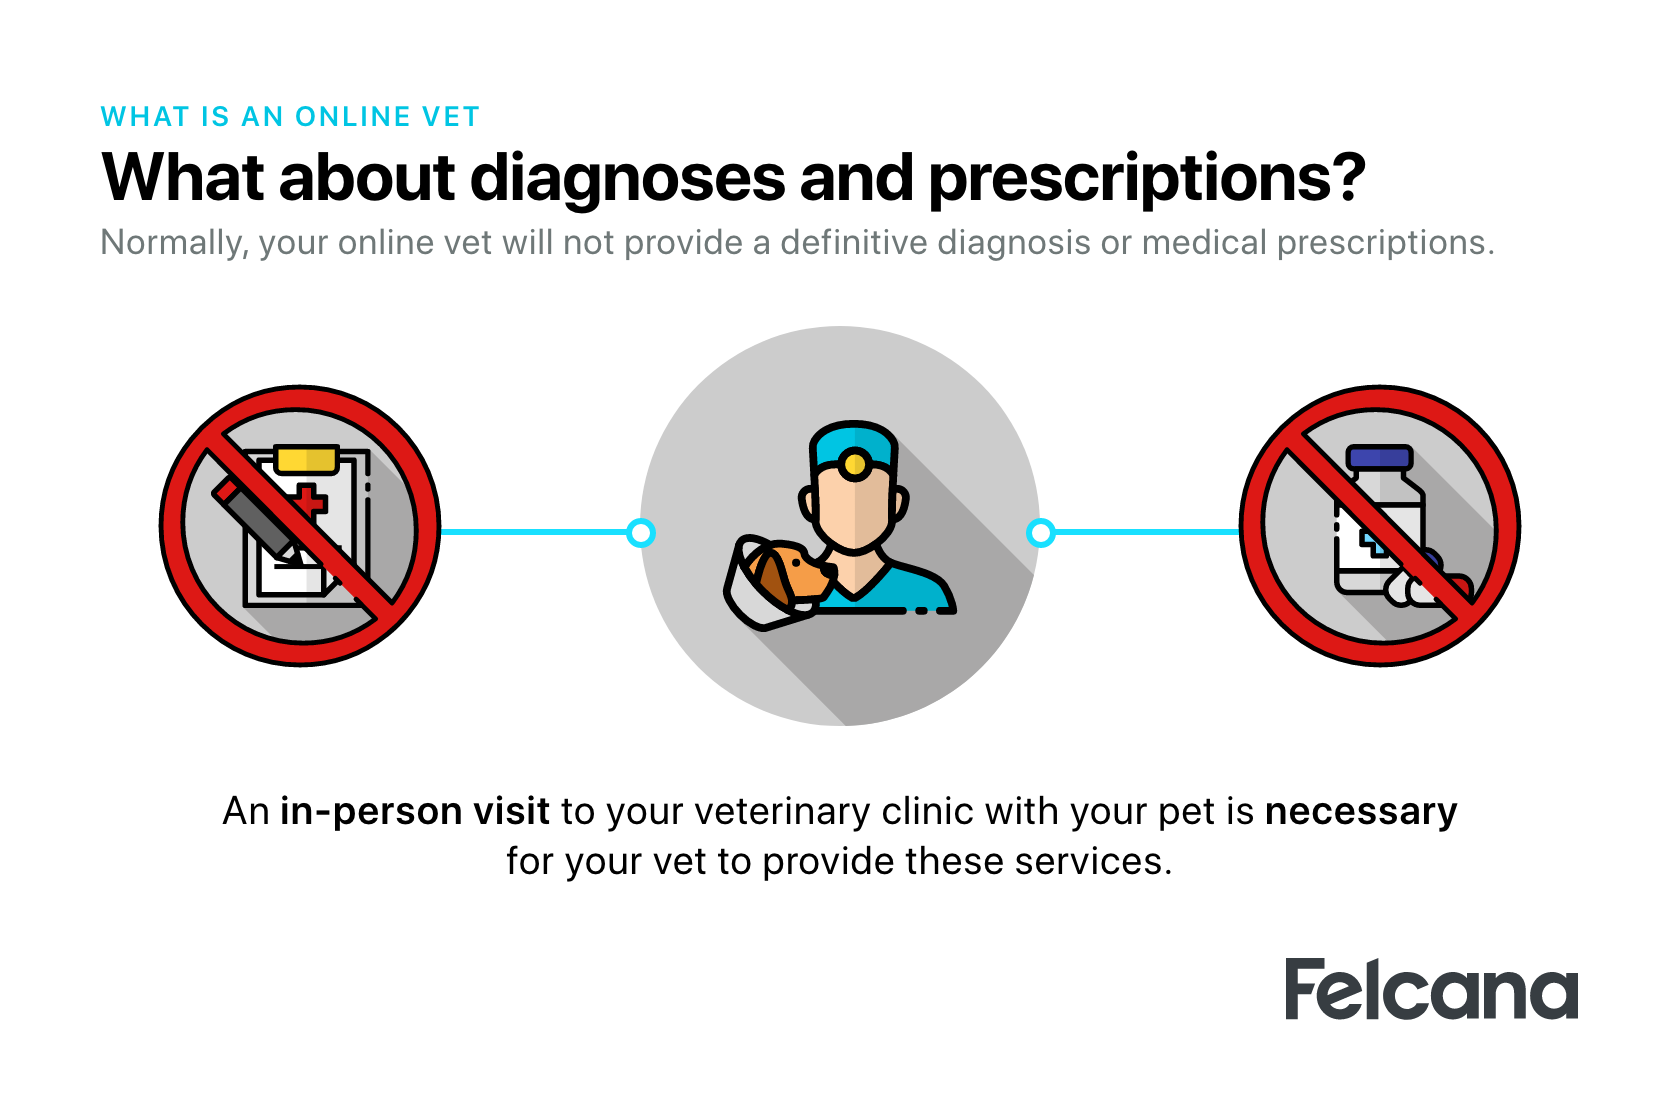 Online vets are unable to give your pet a definitive diagnosis or prescriptions, a visit to your in-person vet is necessary